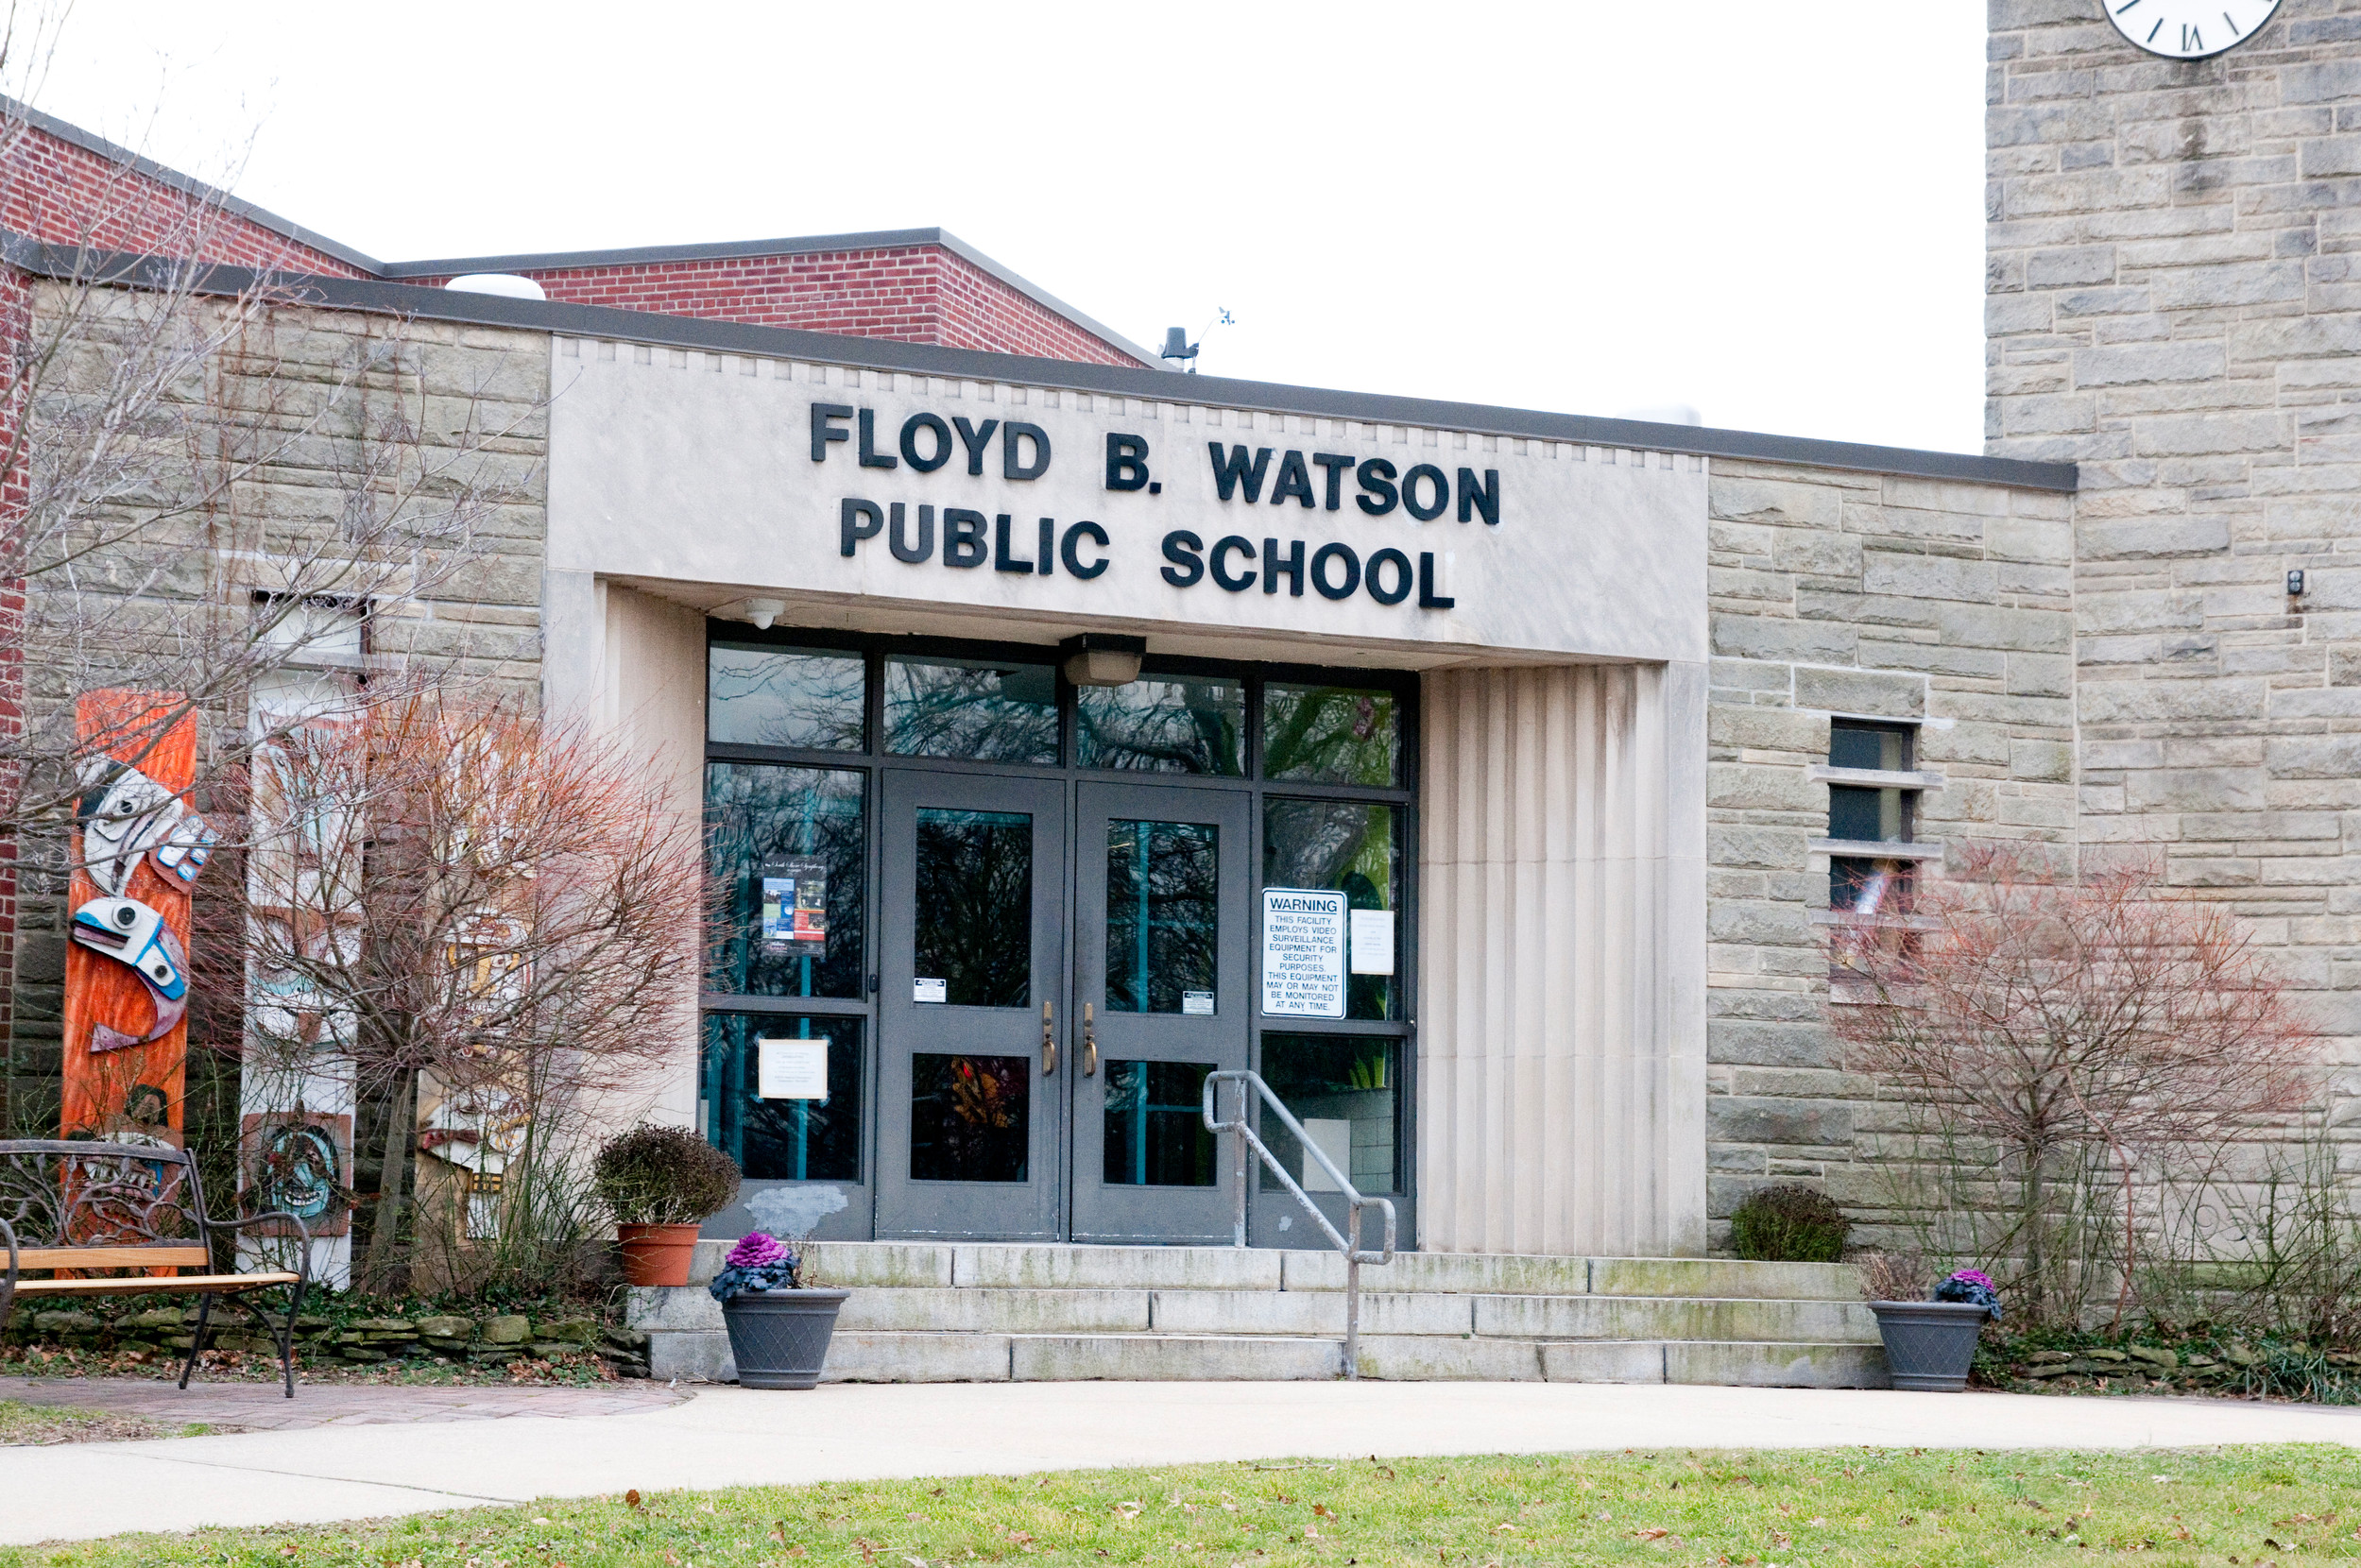 Floyd B. Watson is the 67th-best elementary school in New York State, according to Niche.com